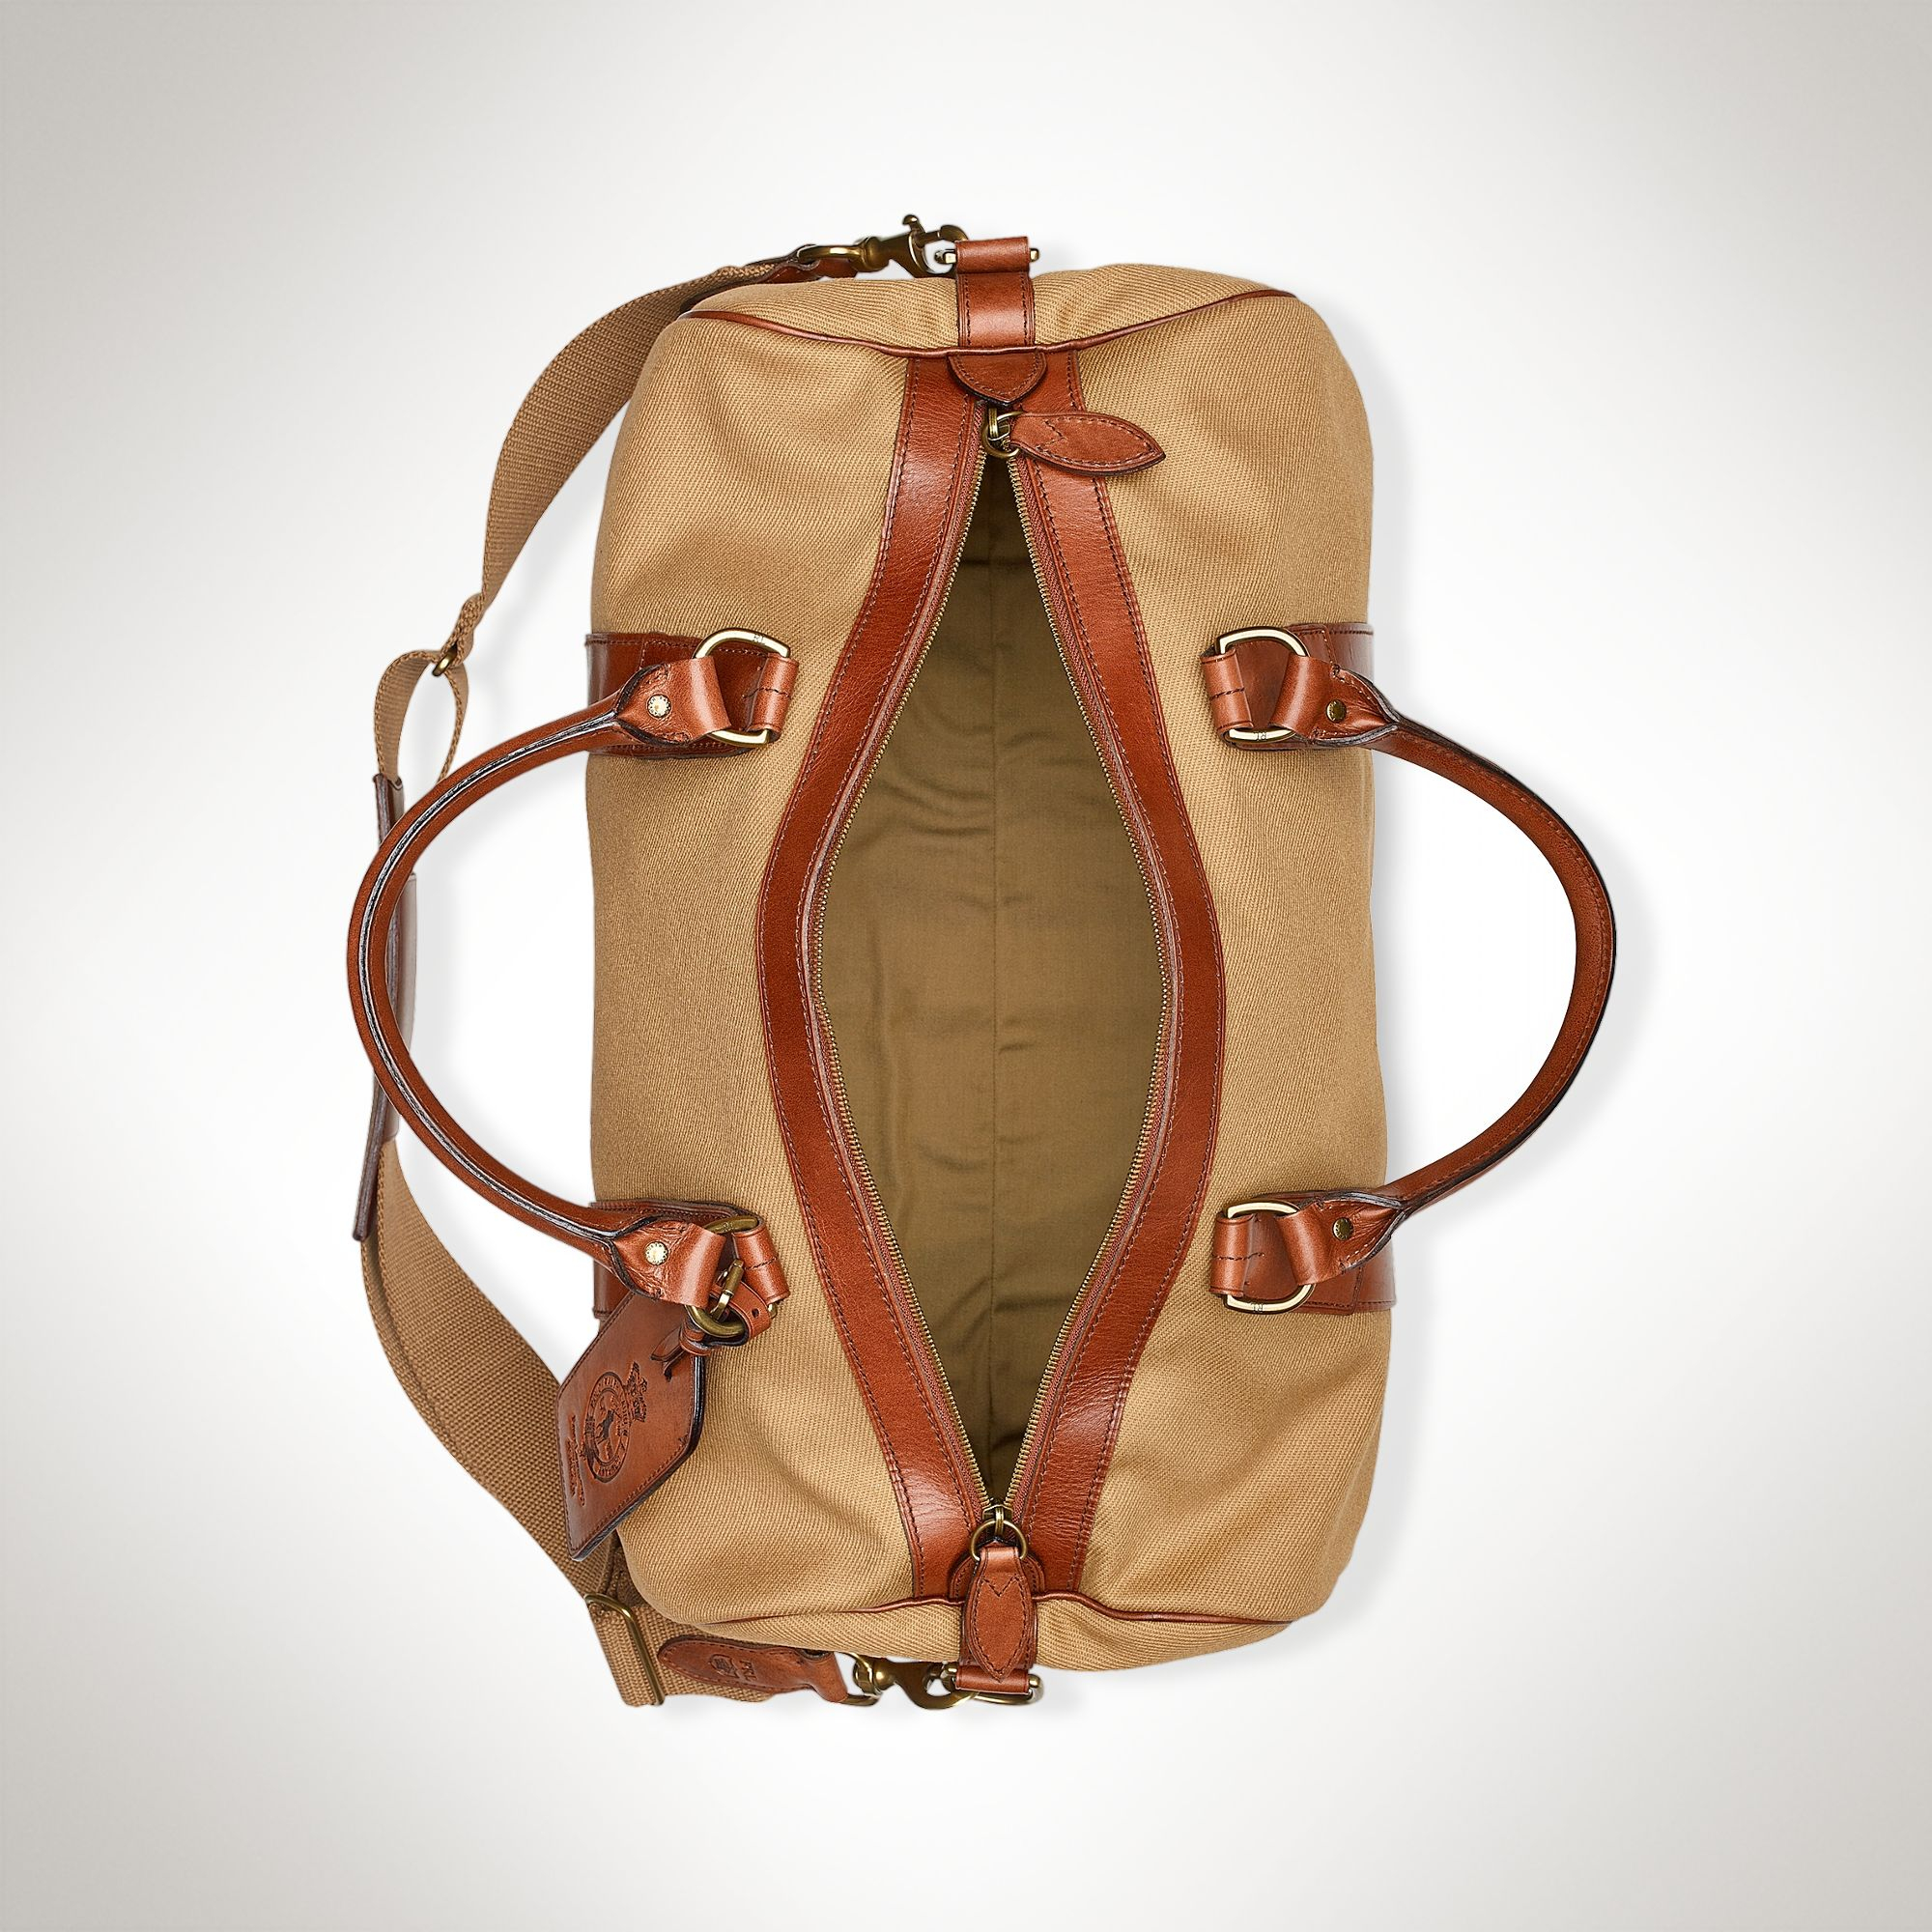 675cb2346f Polo Ralph Lauren Canvas Leather Gym Bag in Natural for Men - Lyst